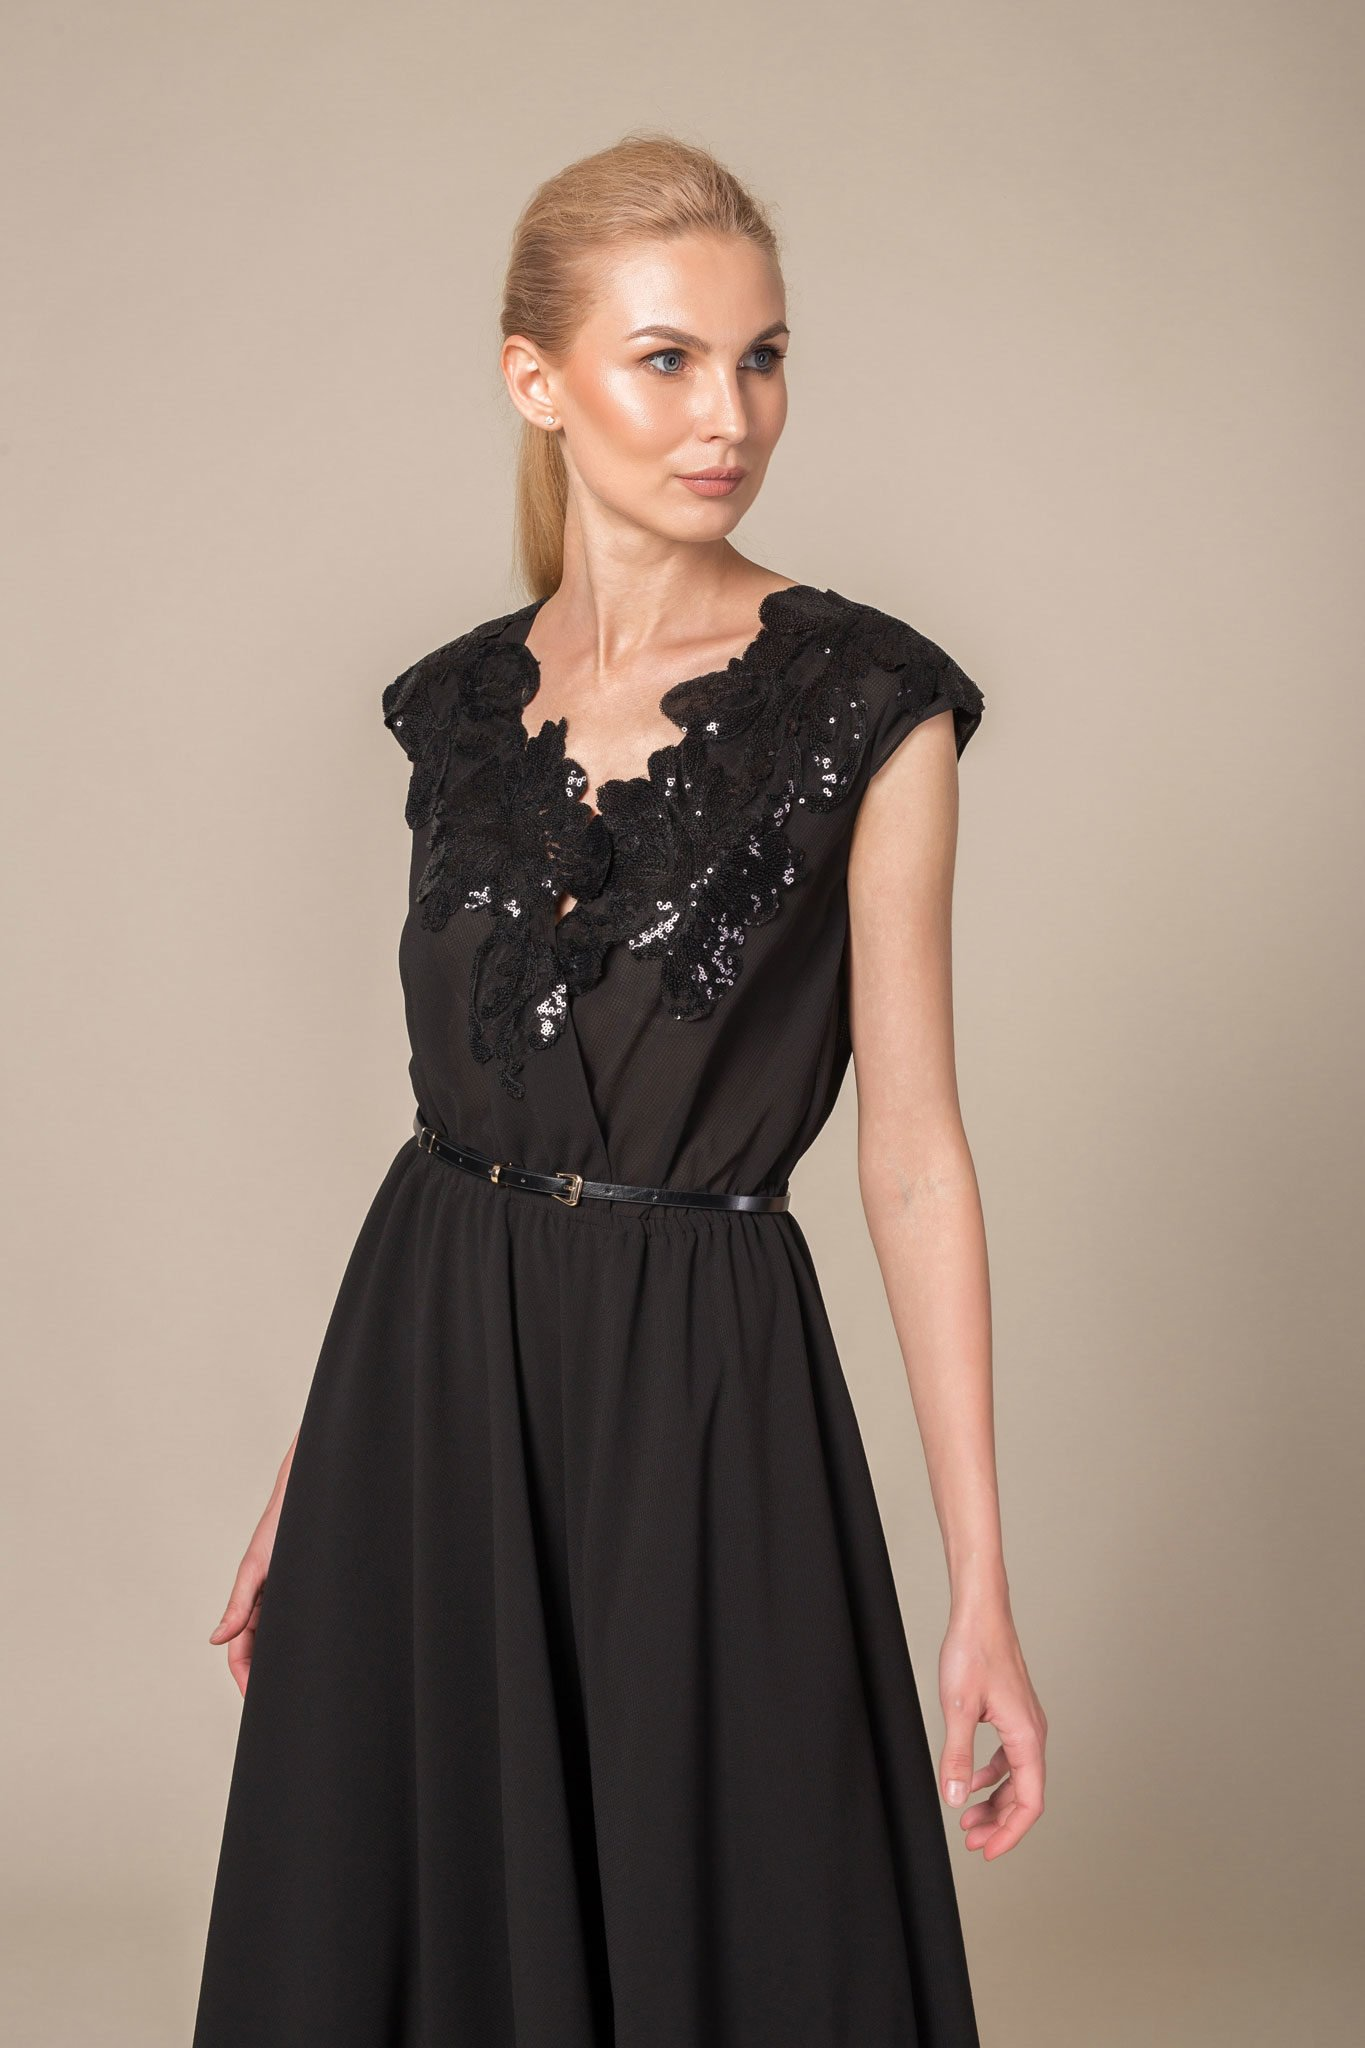 Floor length belted dress with cap sleeves and cinched waist